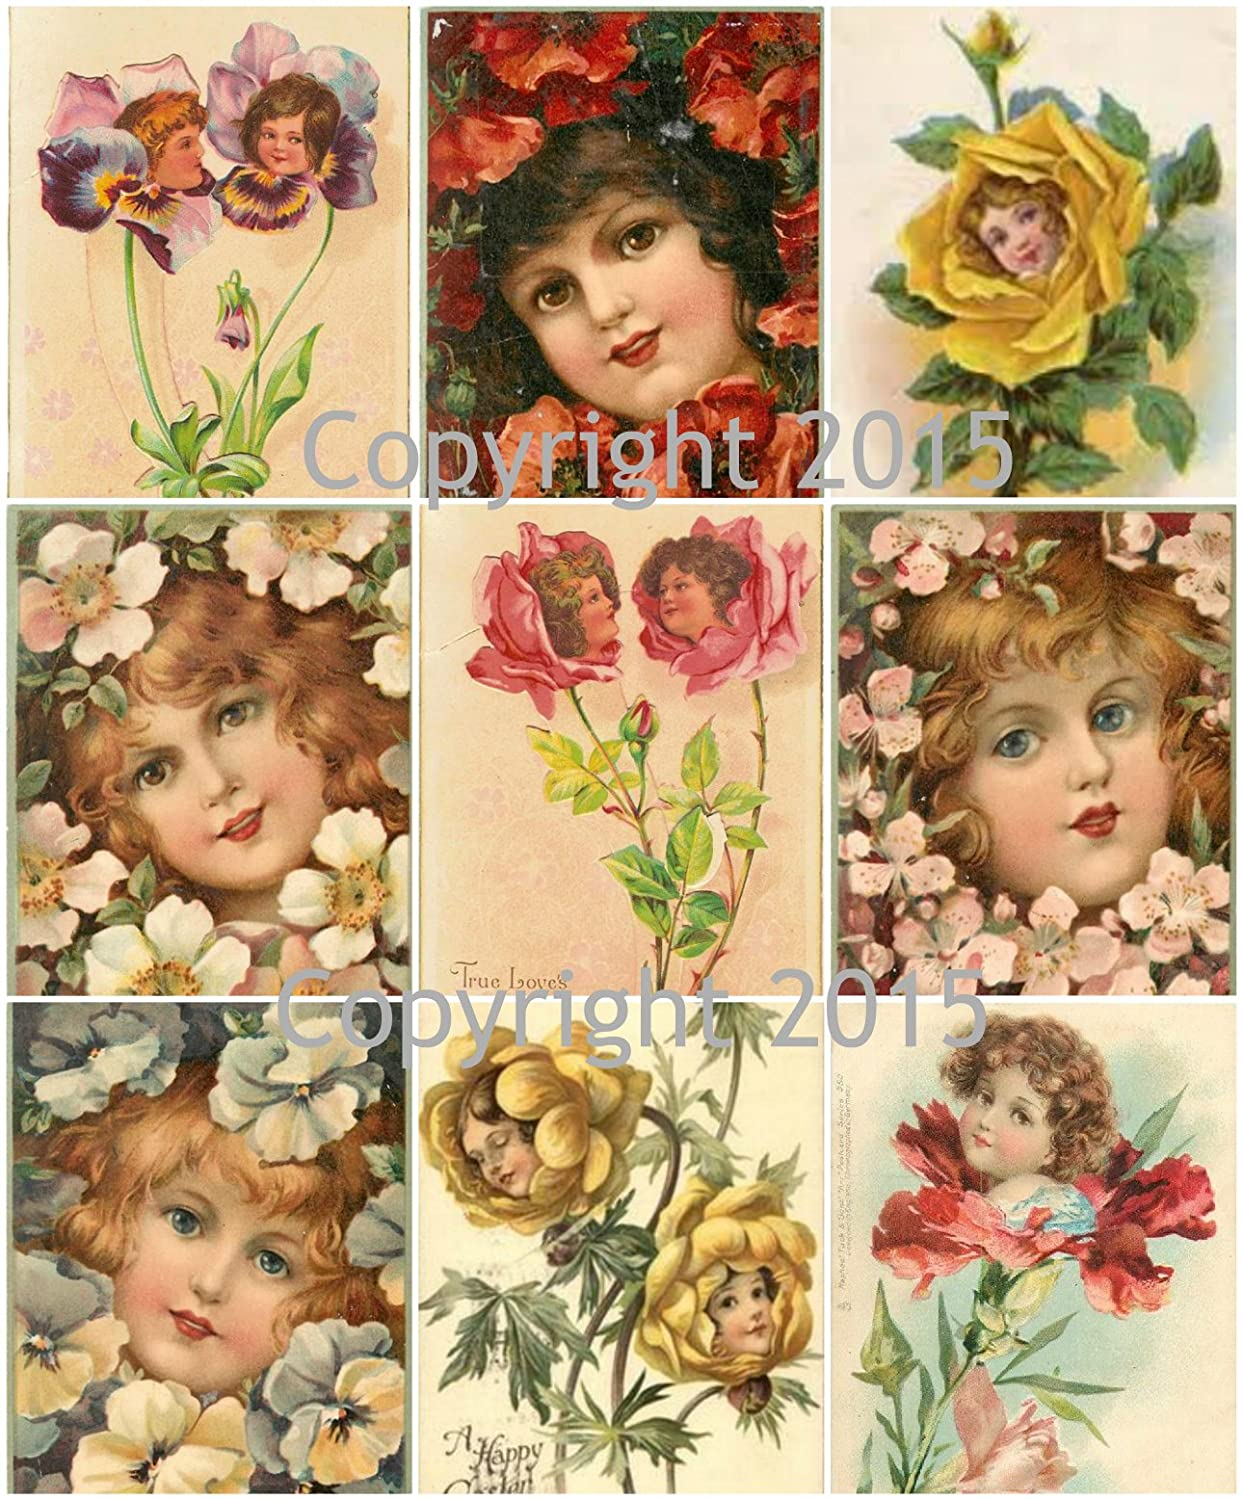 Jewelry Making Scrapbooking Vintage Victorian Flower Faces Collage Sheet Art Images for Decoupage